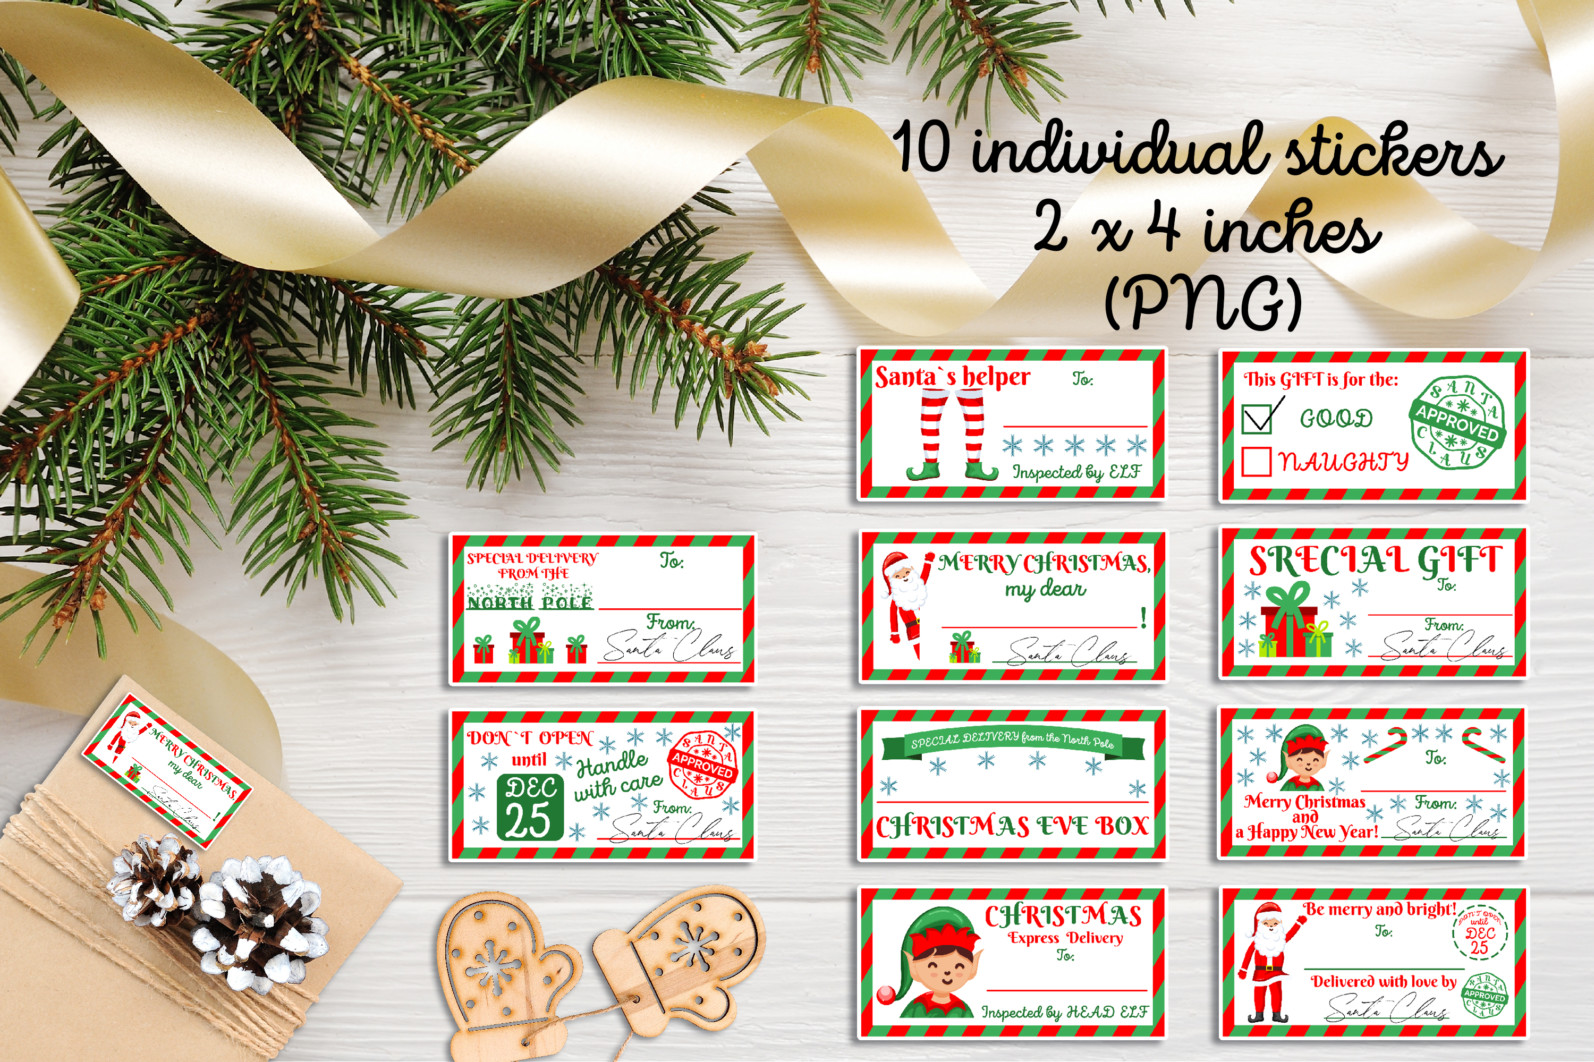 Christmas bundle Vol. 1. Christmas stickers. Christmas SVG bundle. - 23 Christmas Stickers custom gift tags Christmas gift christmas gift tags holiday stickers printable gift tag stickers Printable Stickers scaled -